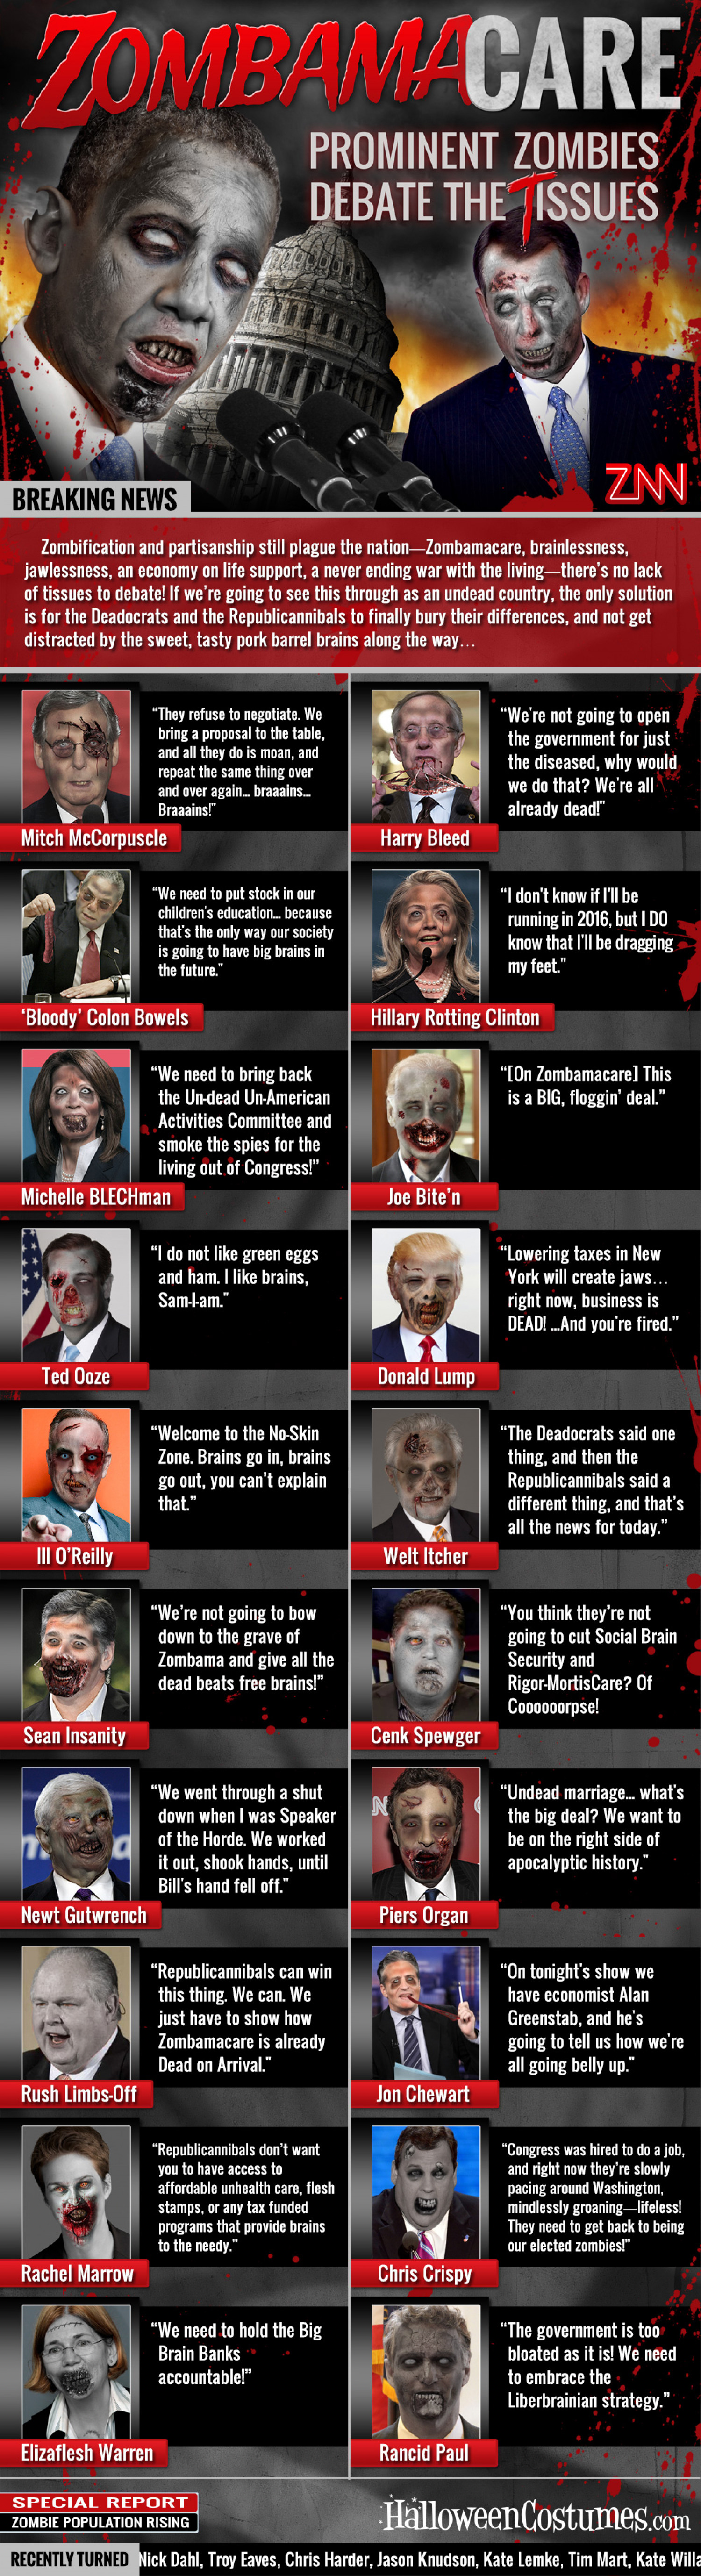 Zobama Care: Prominent Zombies Debate the Tissues Infographic